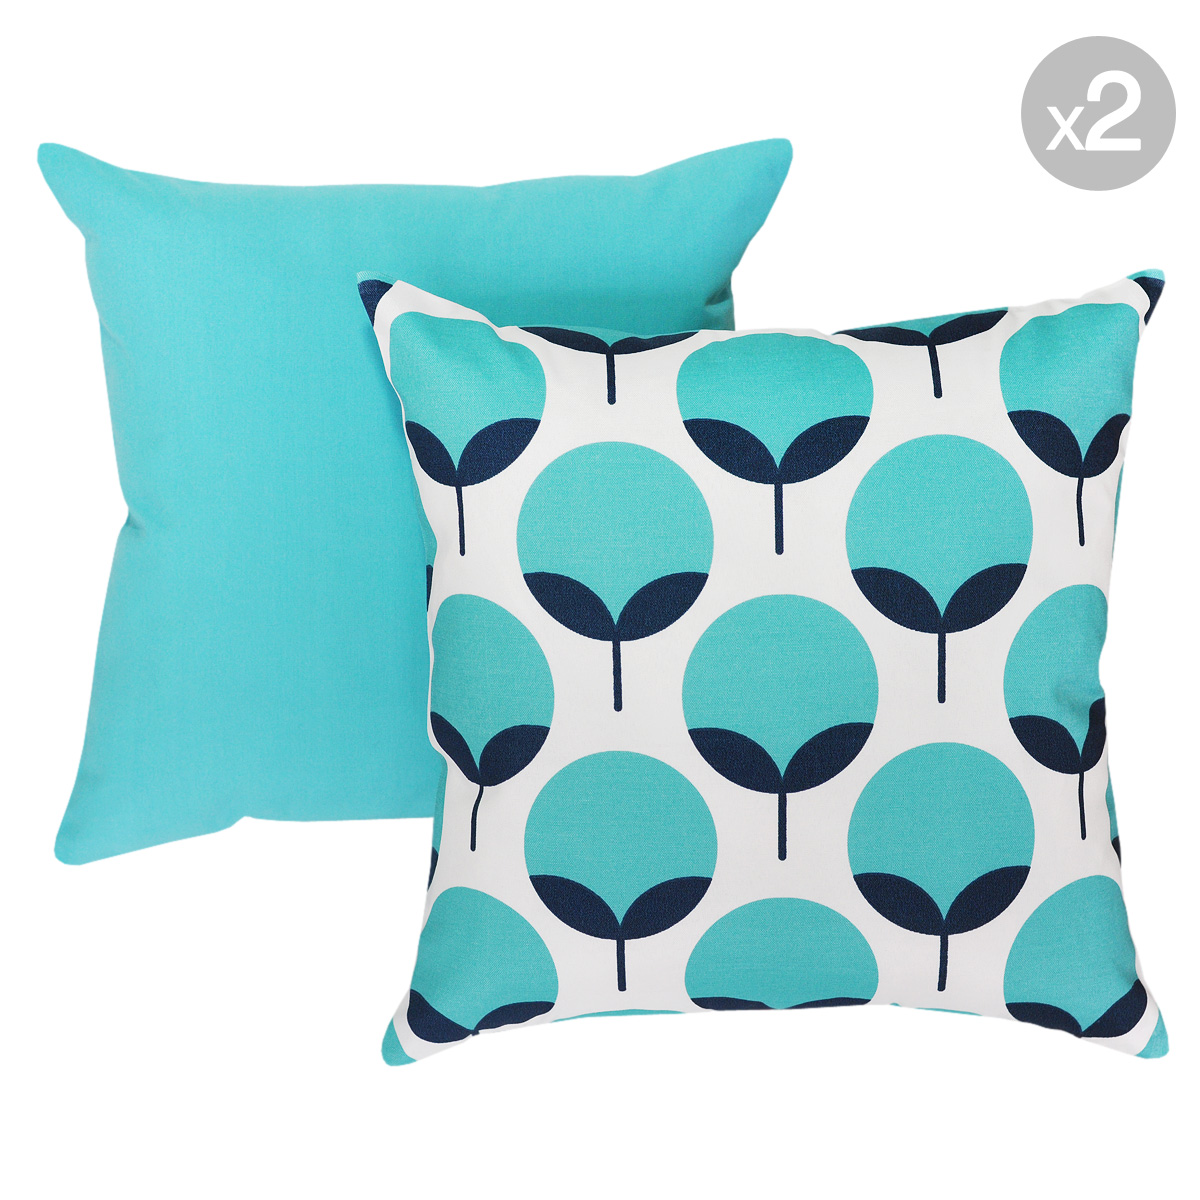 Caroline Oxford + Dyed-Solid Ocean Outdoor Cushions 45x45cm